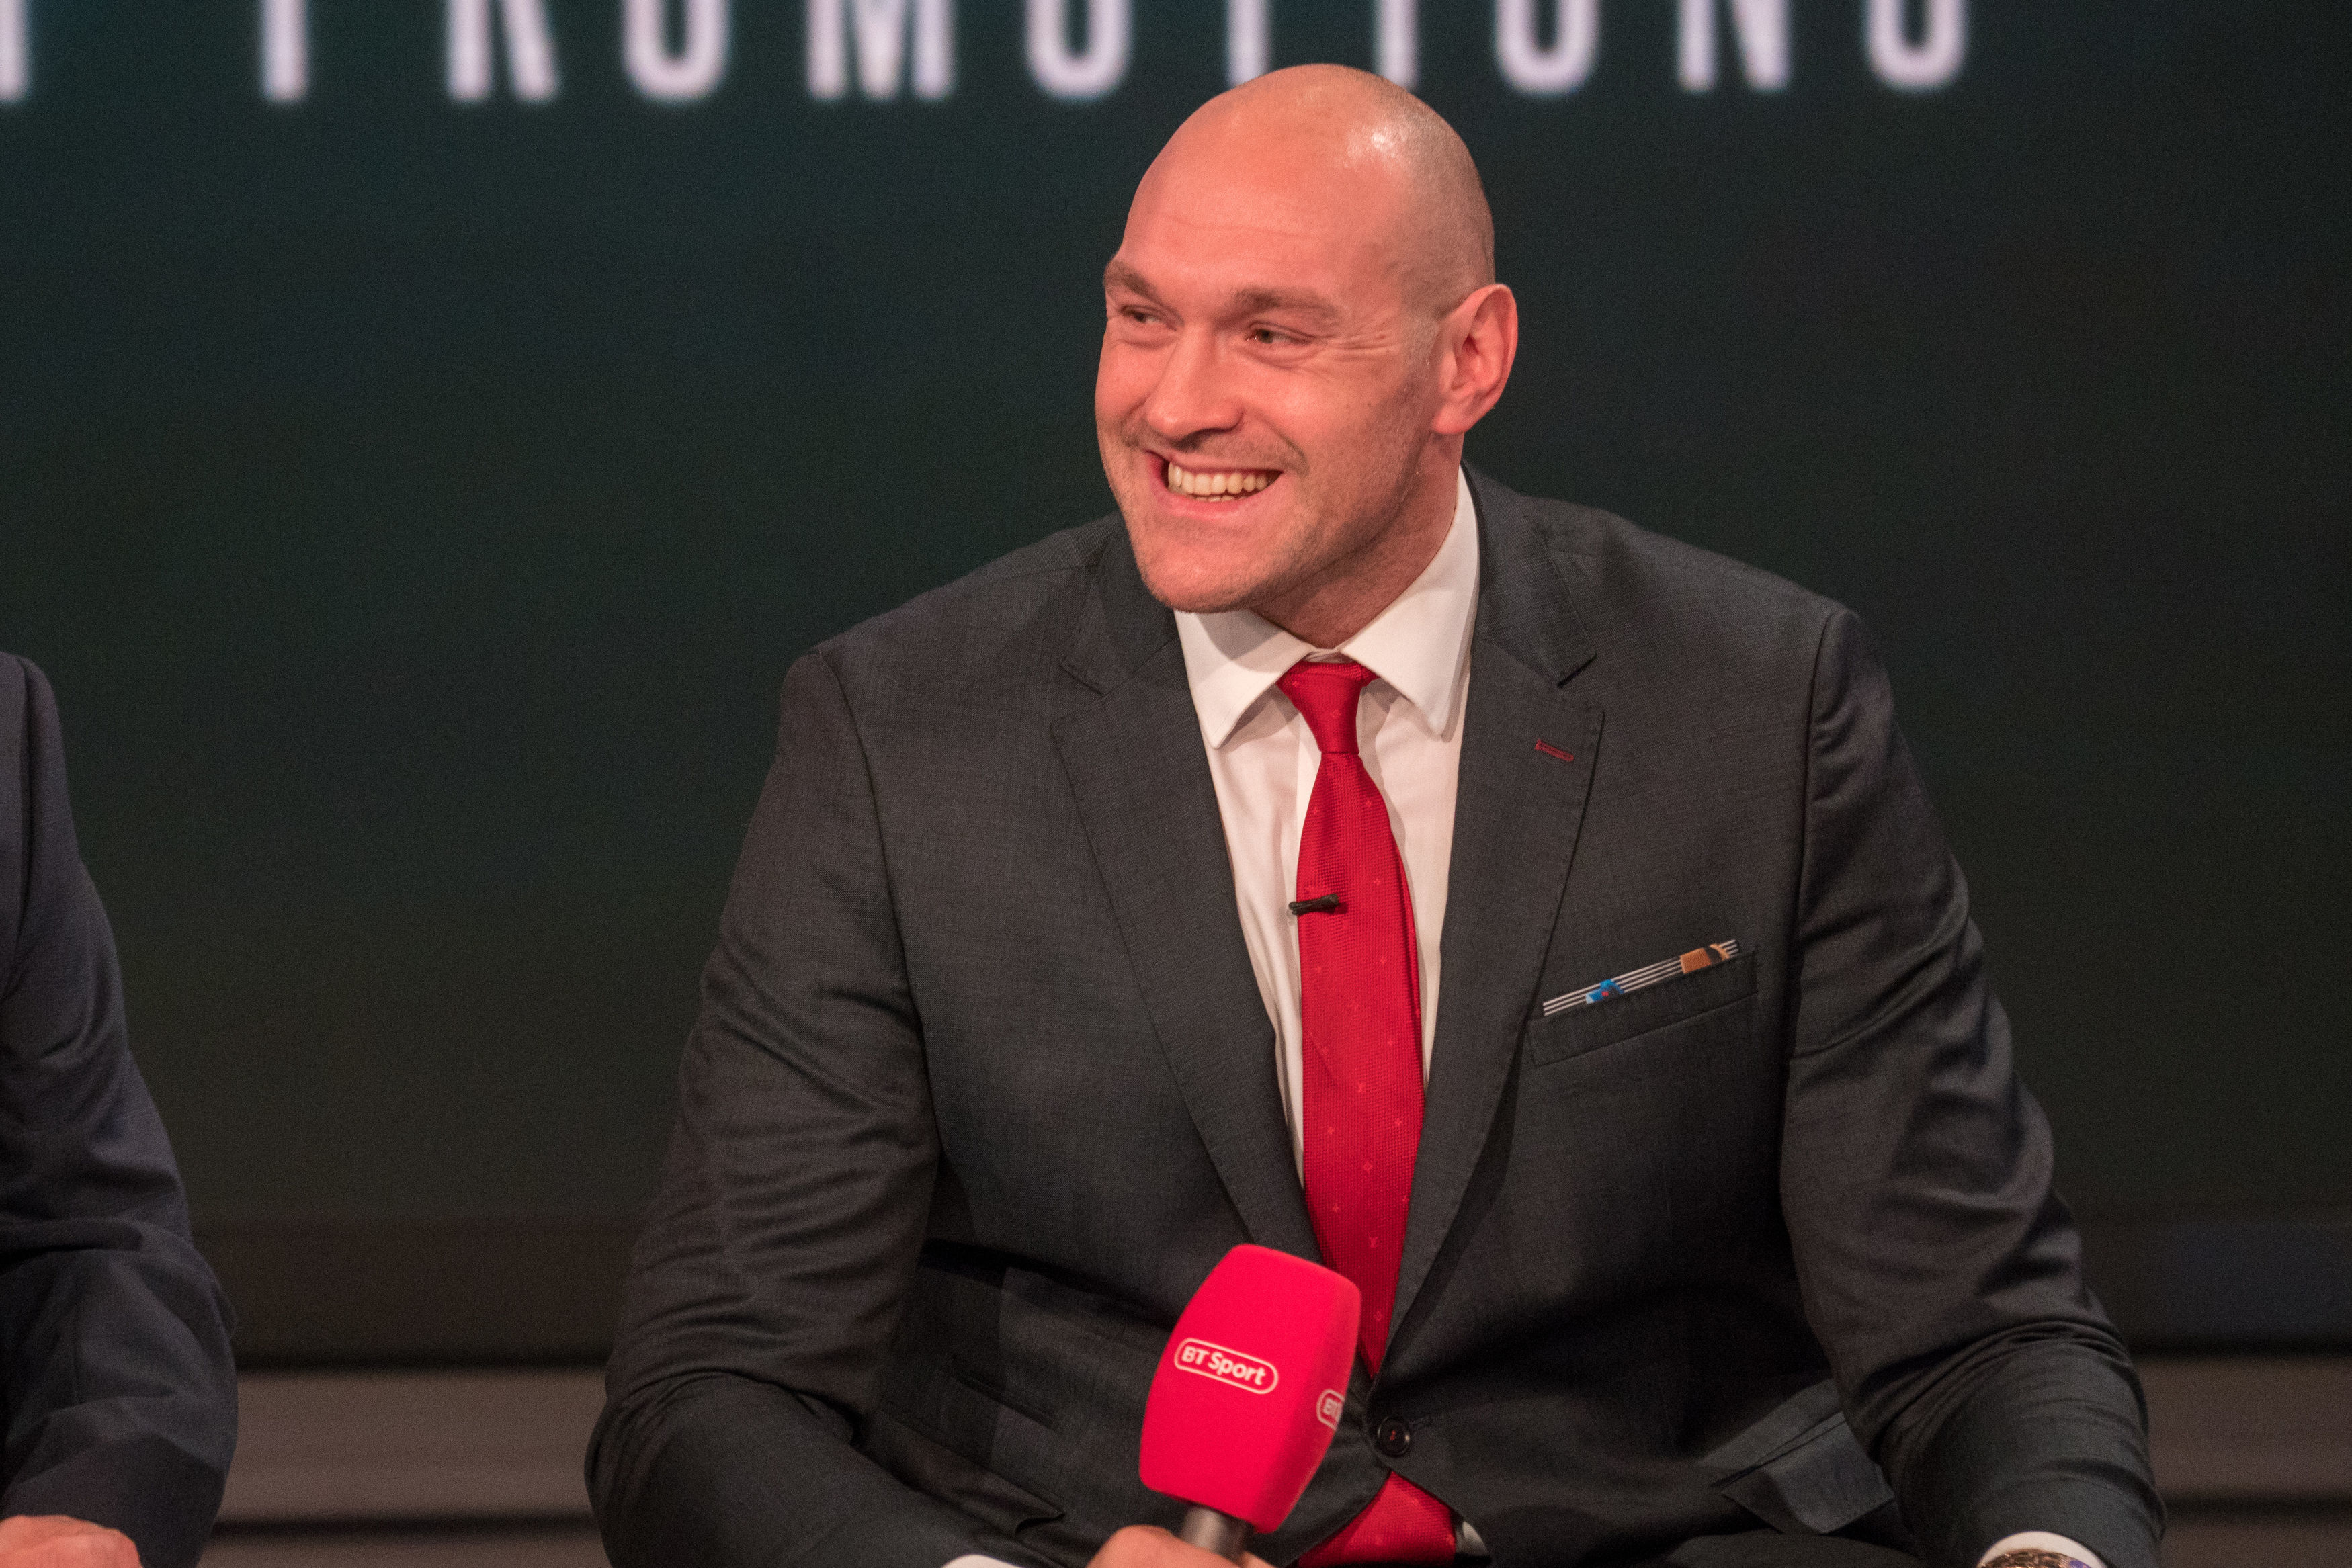 Tyson Fury has blasted Anthony Joshua over his next fight against American loudmouth Jarrell Miller